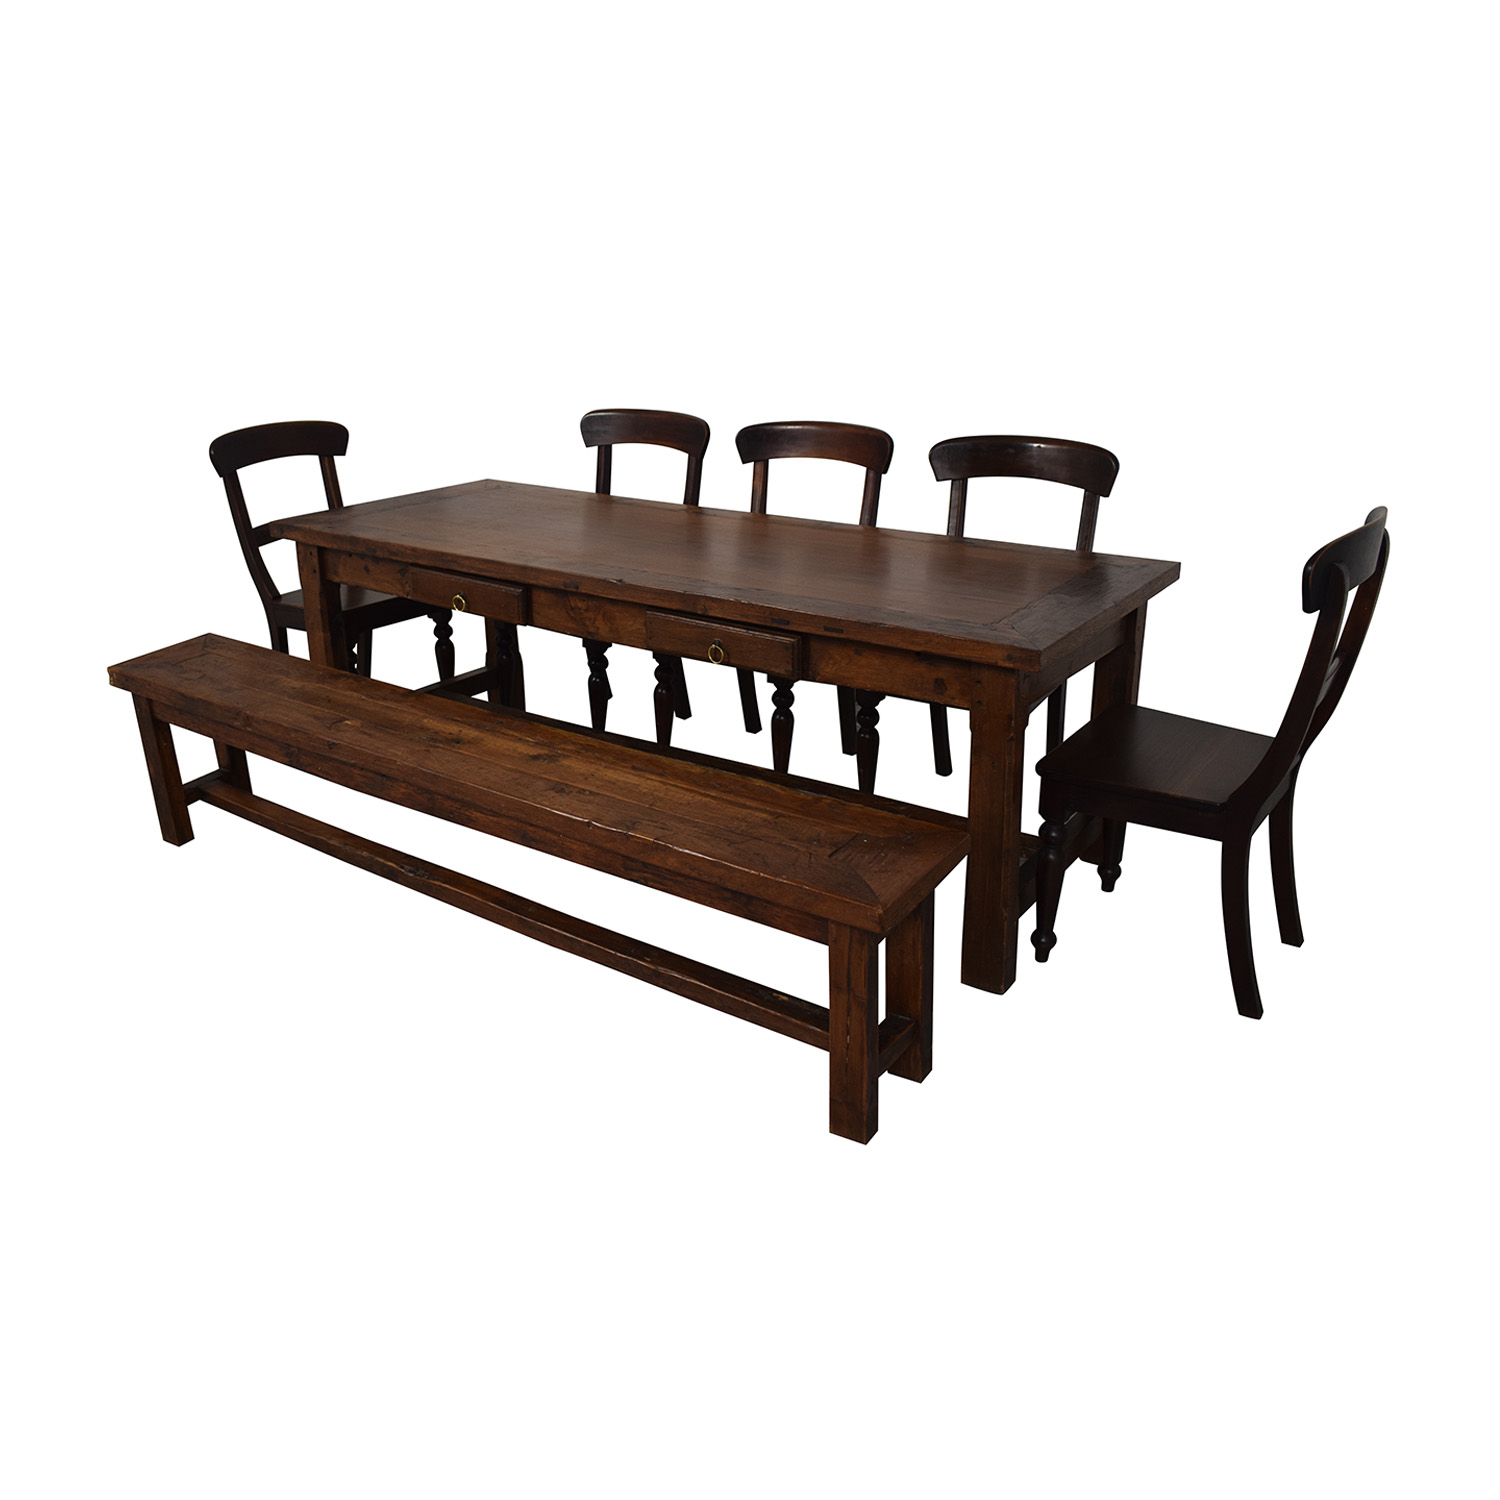 Crate & Barrel Crate & Barrel Extendable Dining Set with Bench price